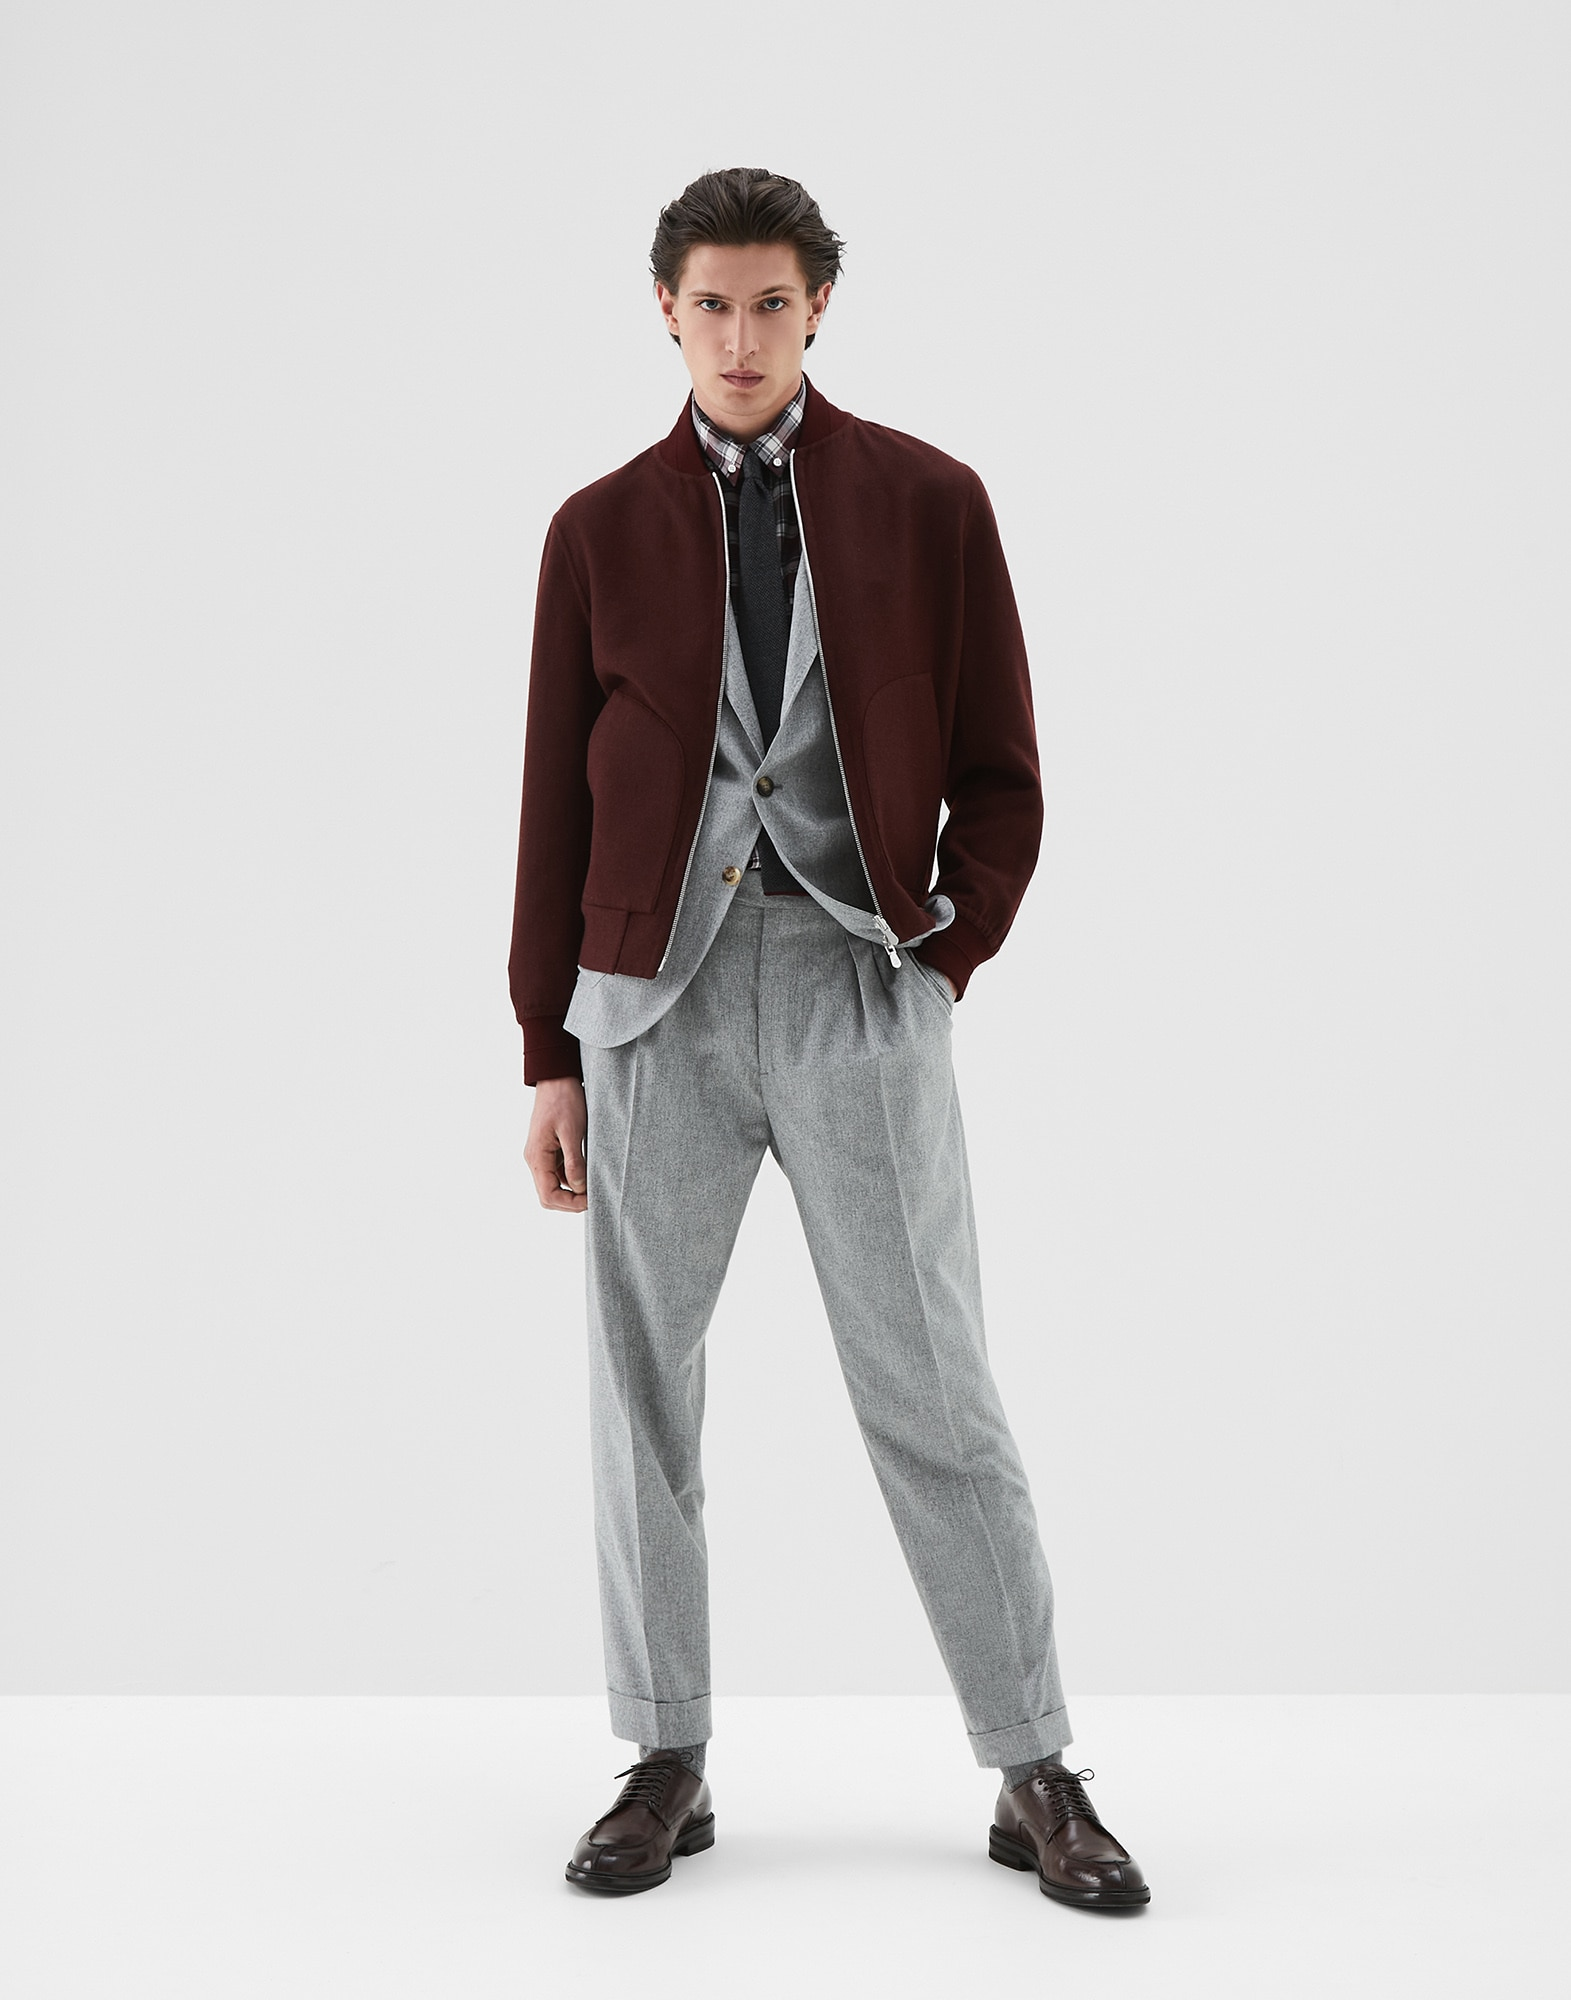 Trousers - Full look